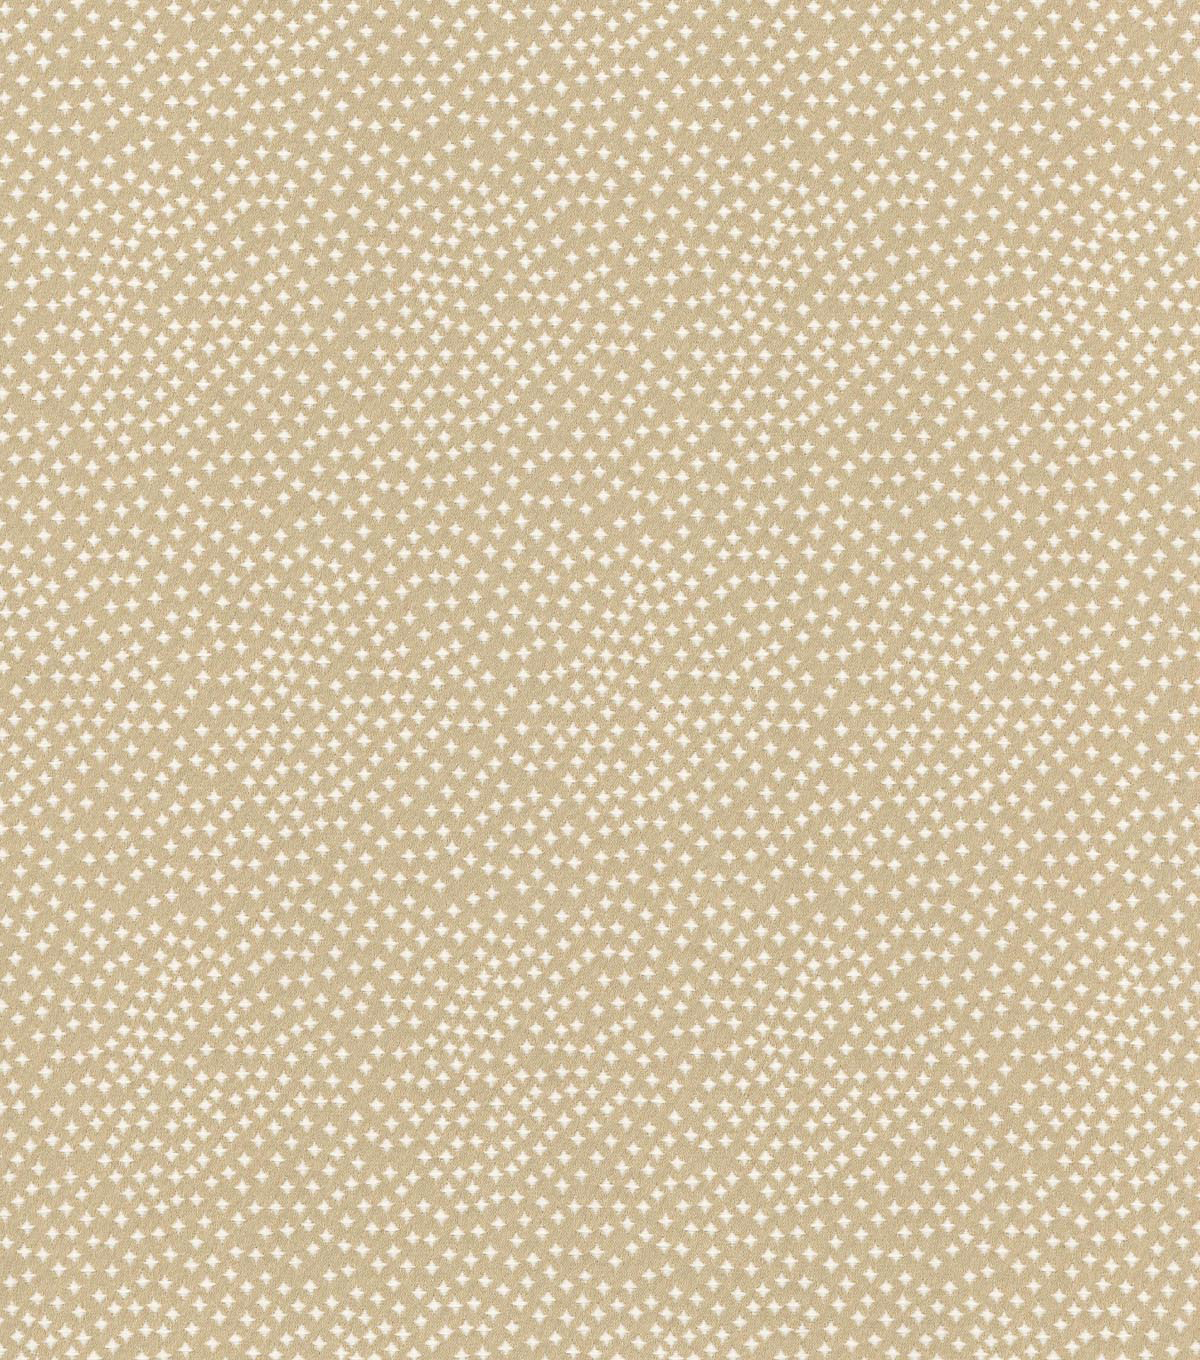 Home Decor 8\u0022x8\u0022 Swatch Fabric-Tracy Porter Following Stars Desert